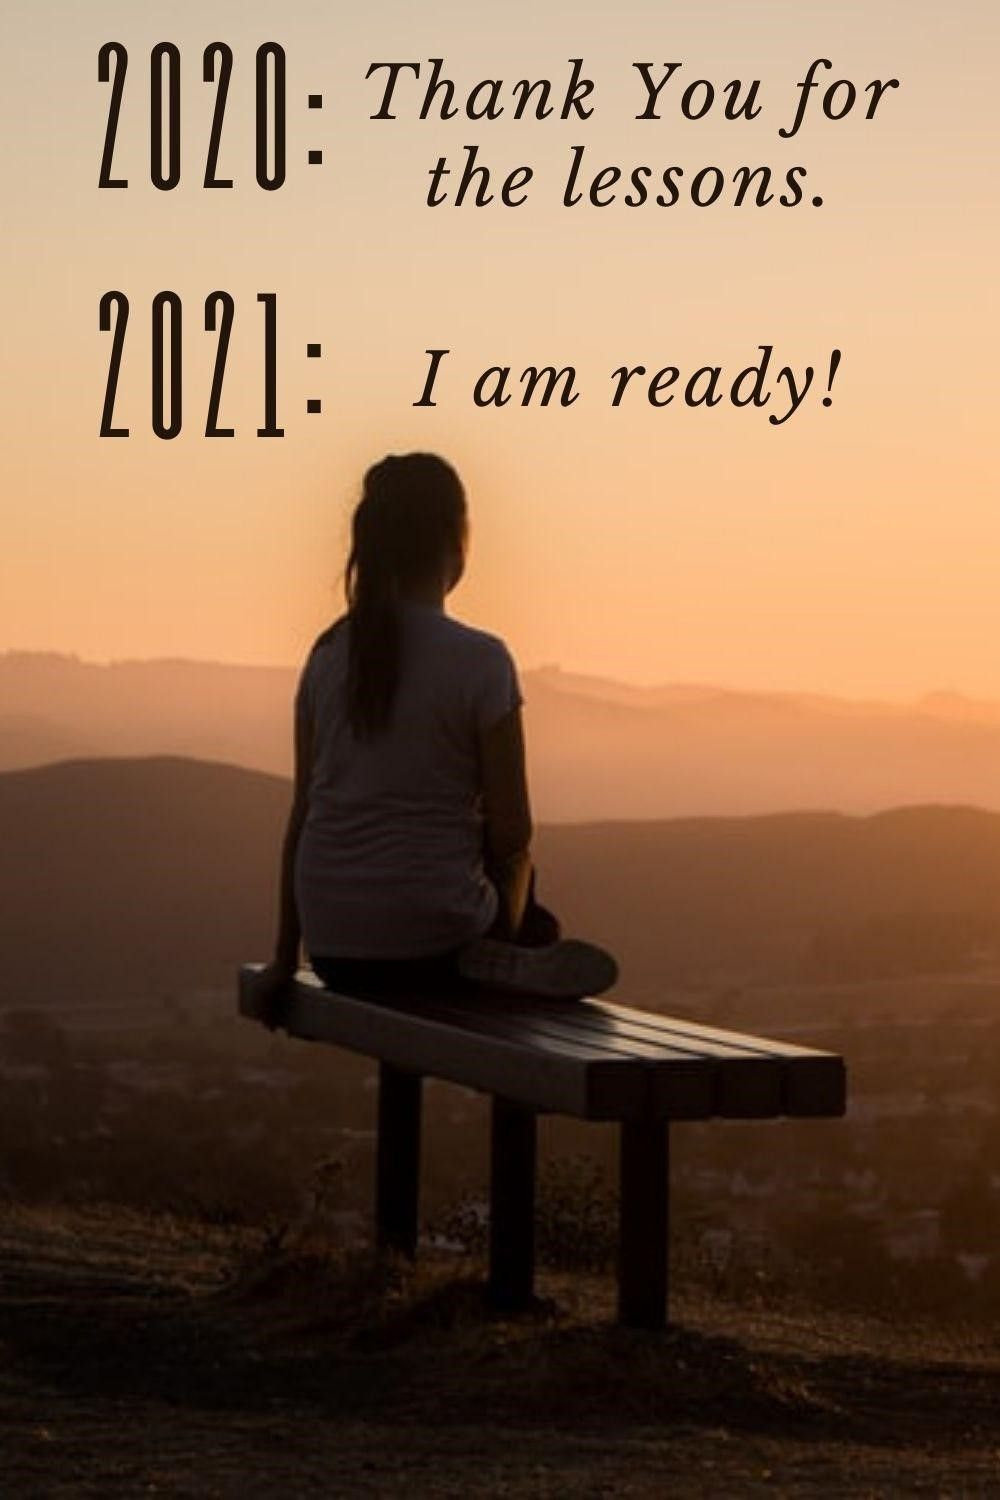 A New Year: Hope for 2021